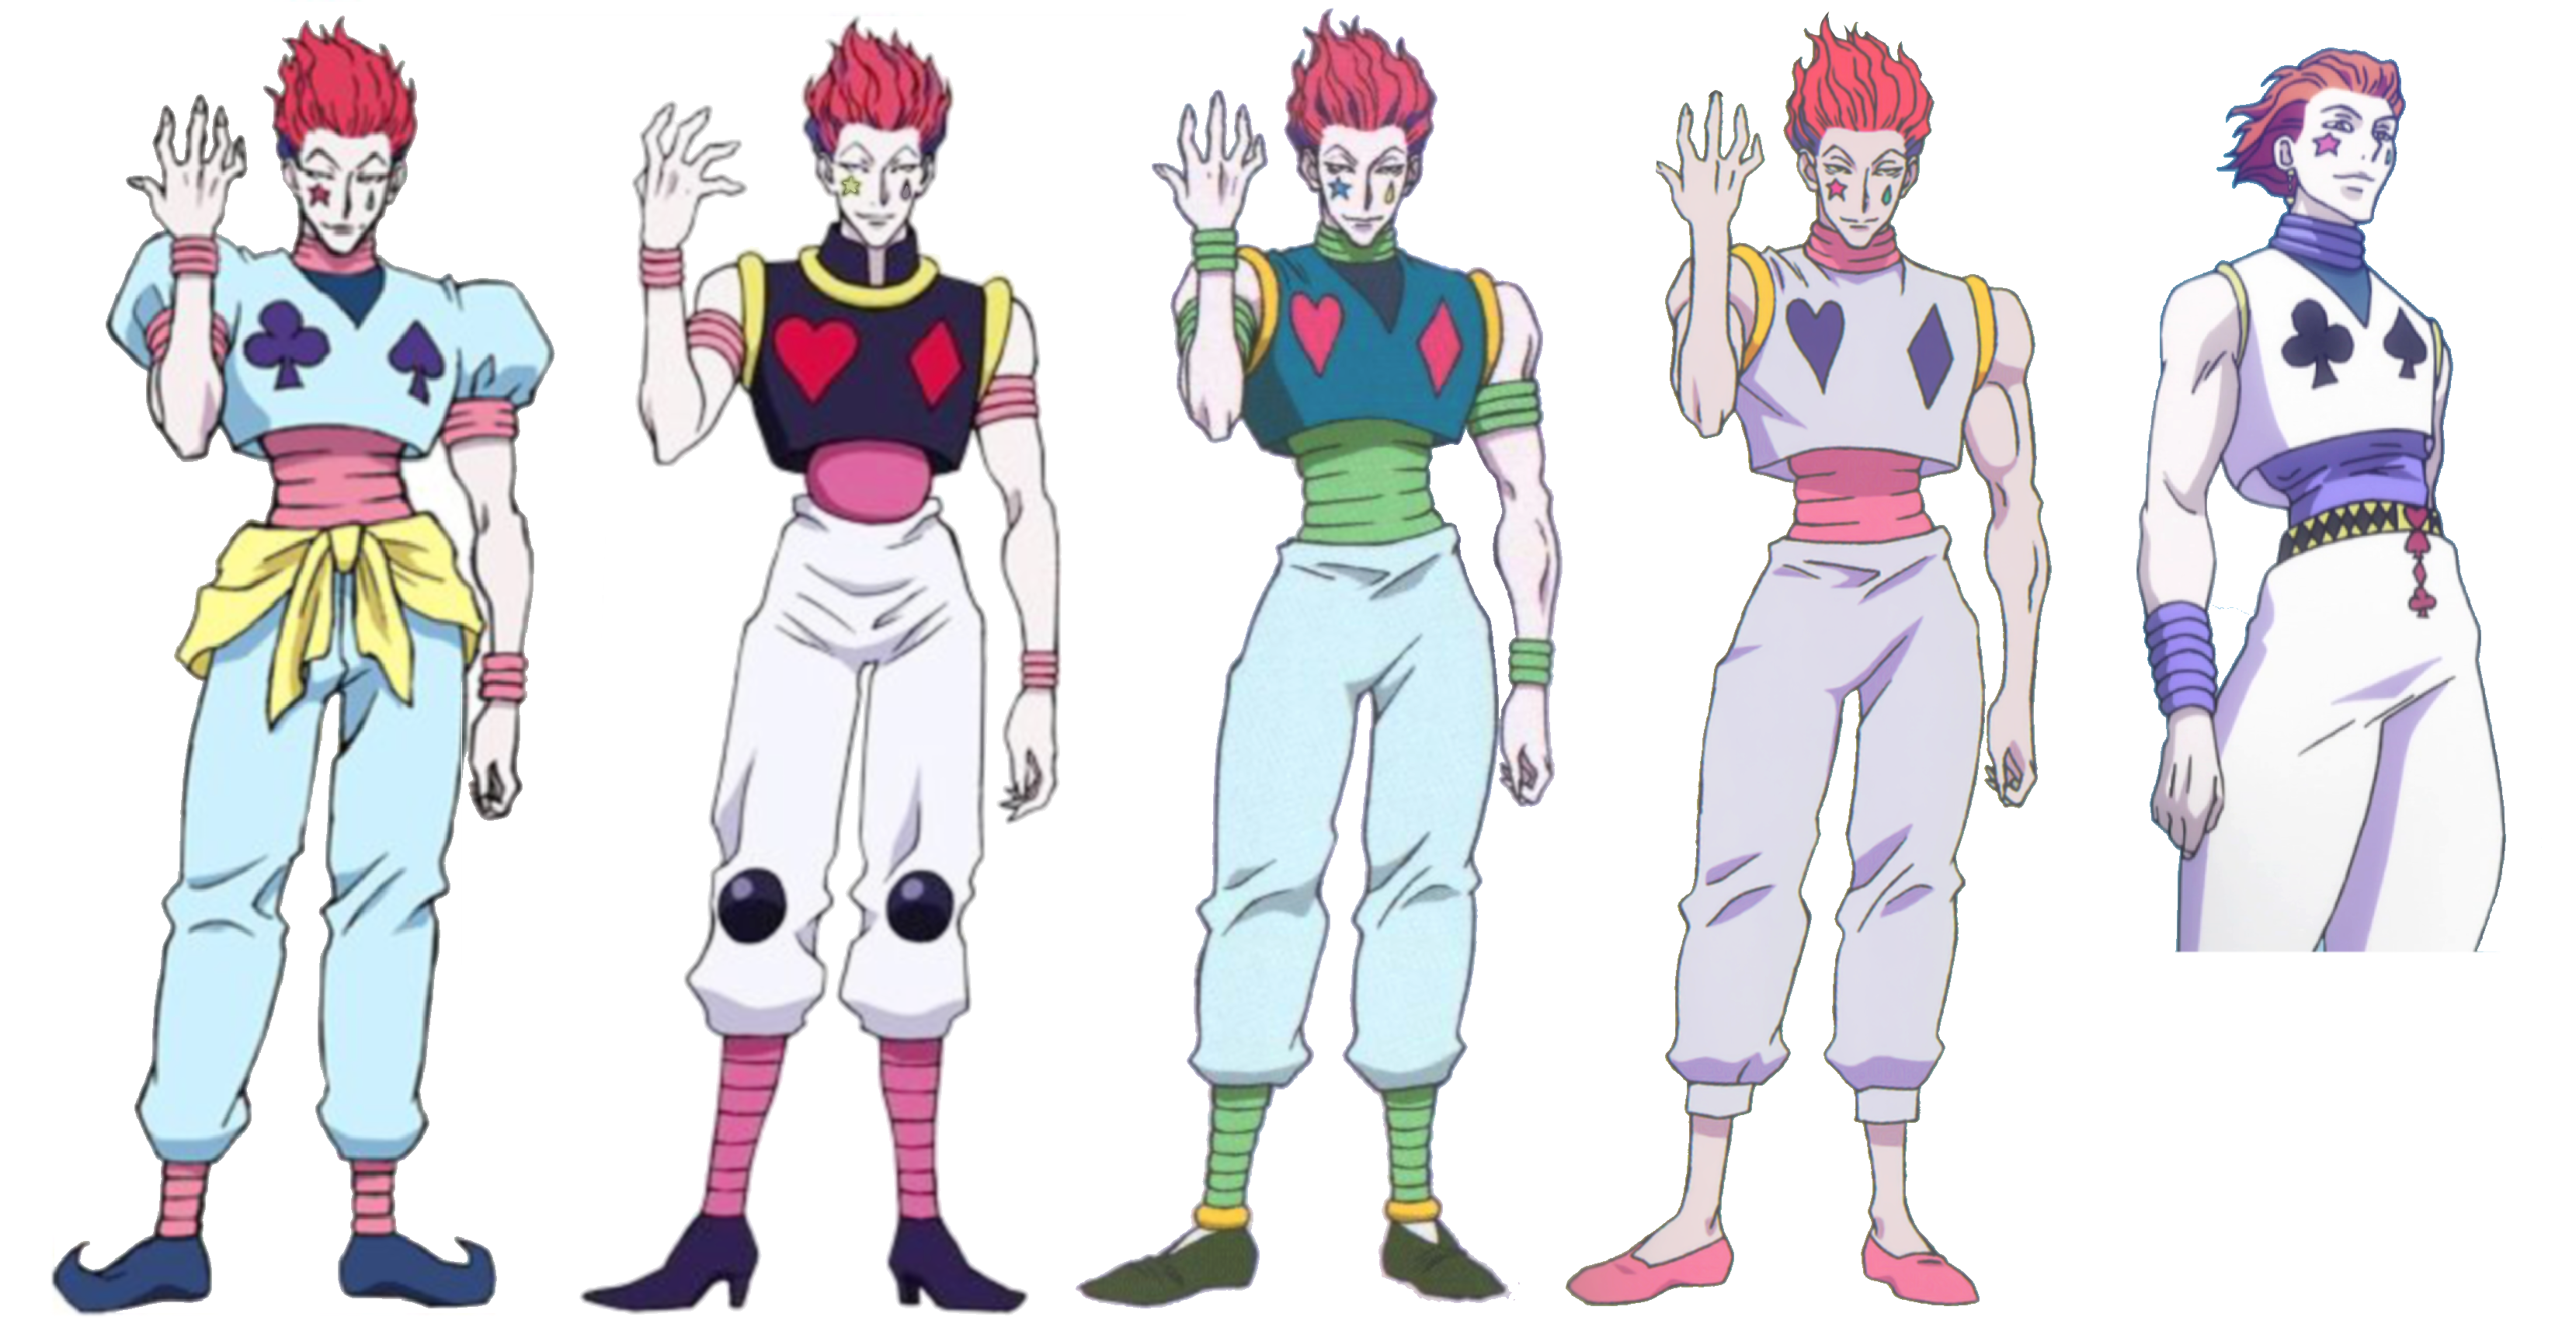 Hisoka Morow S Outfits Hunter Anime Anime Crafts Hisoka